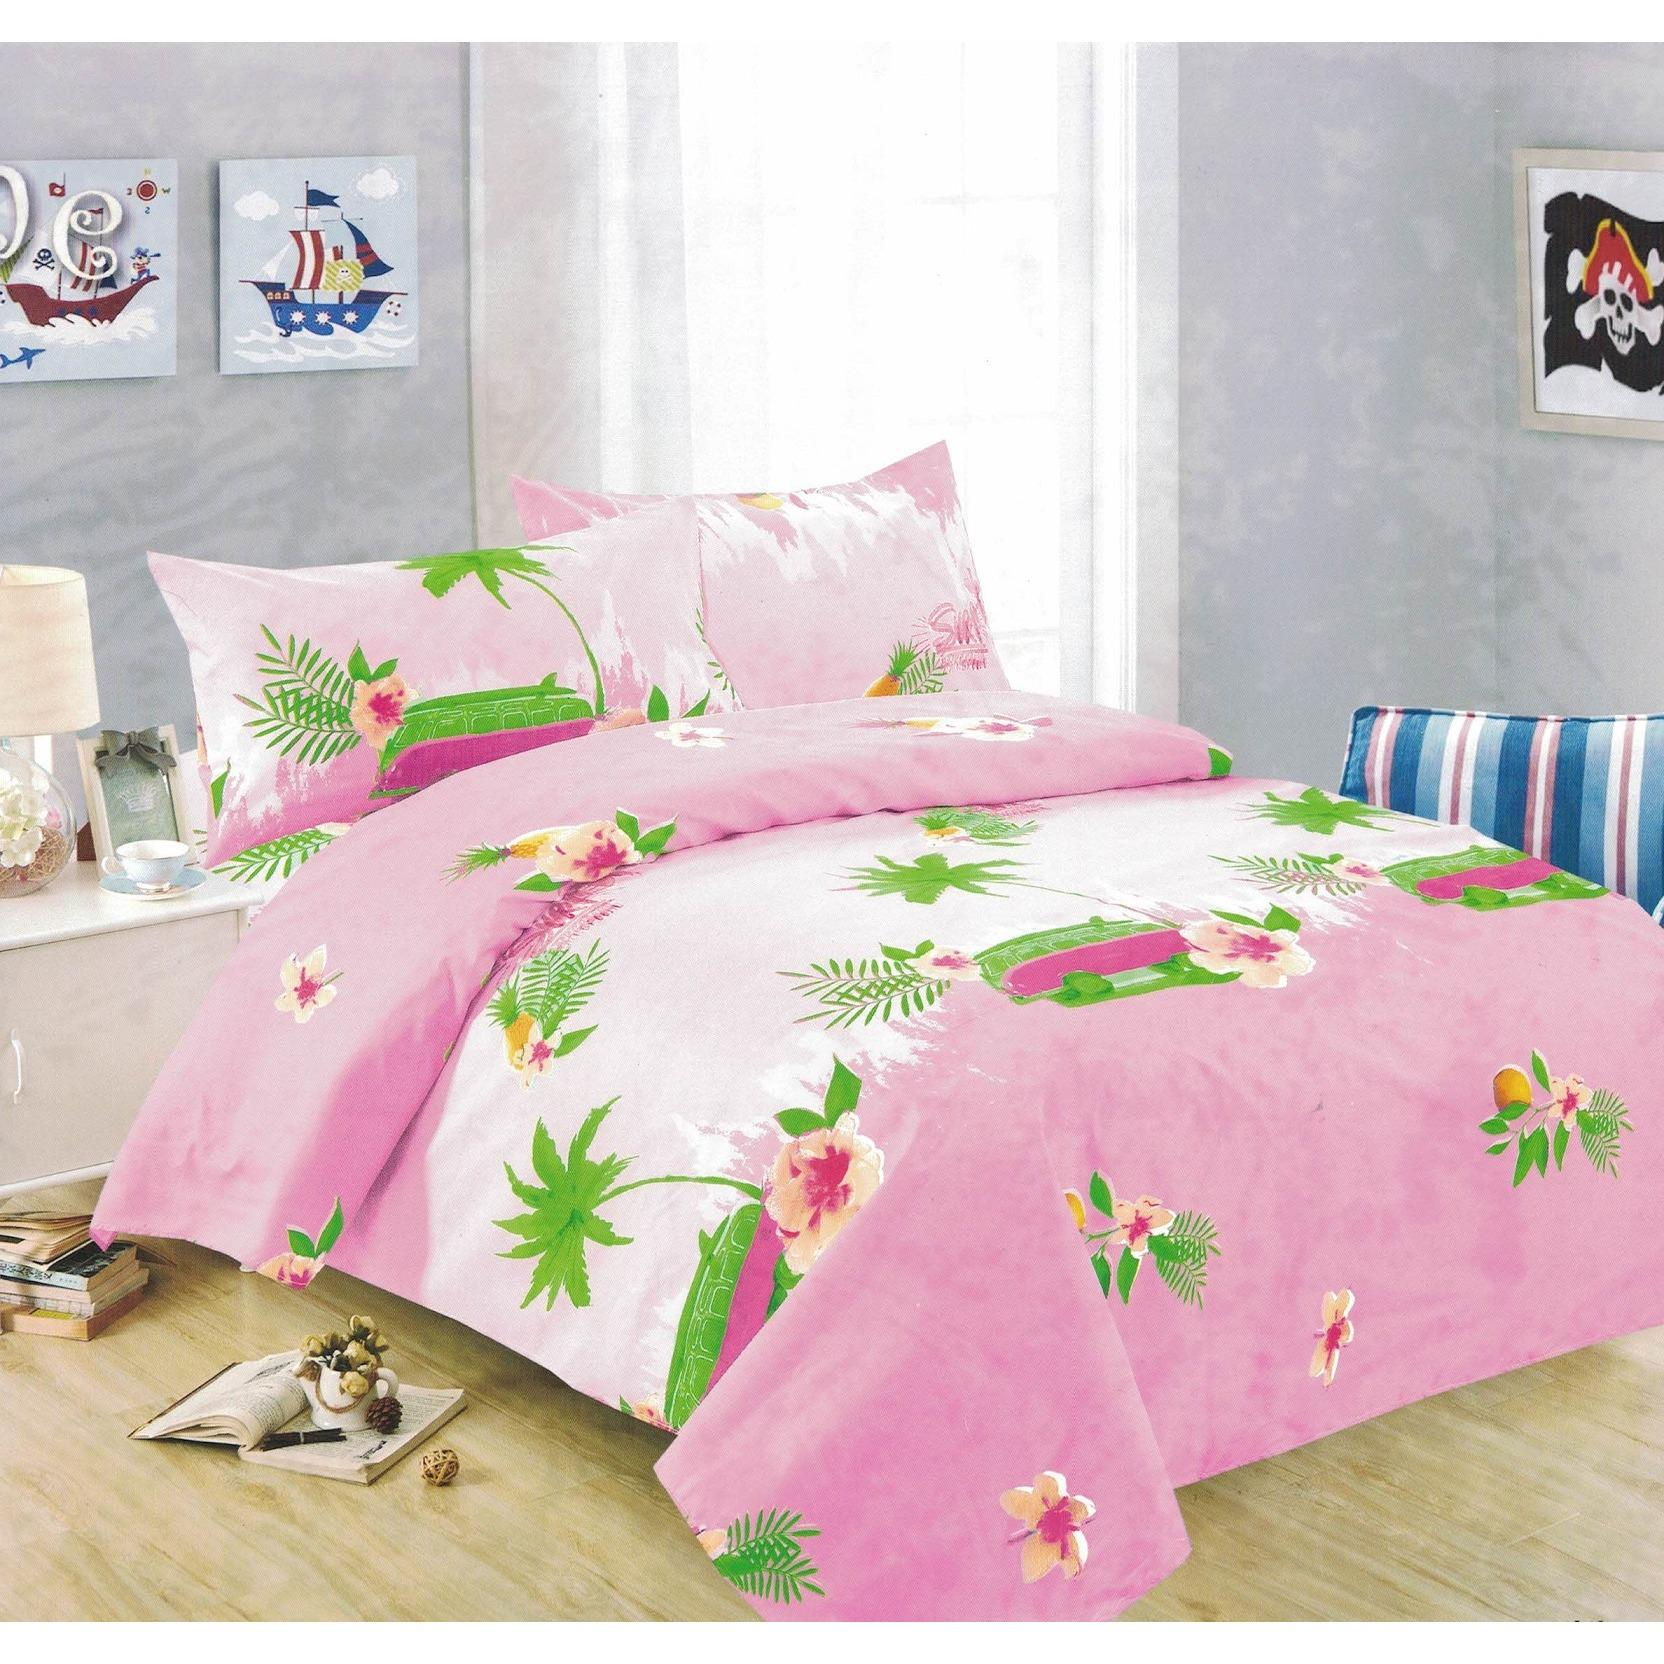 Beddings For Sale   Bed Items Prices, Brands U0026 Review In Philippines |  Lazada.com.ph